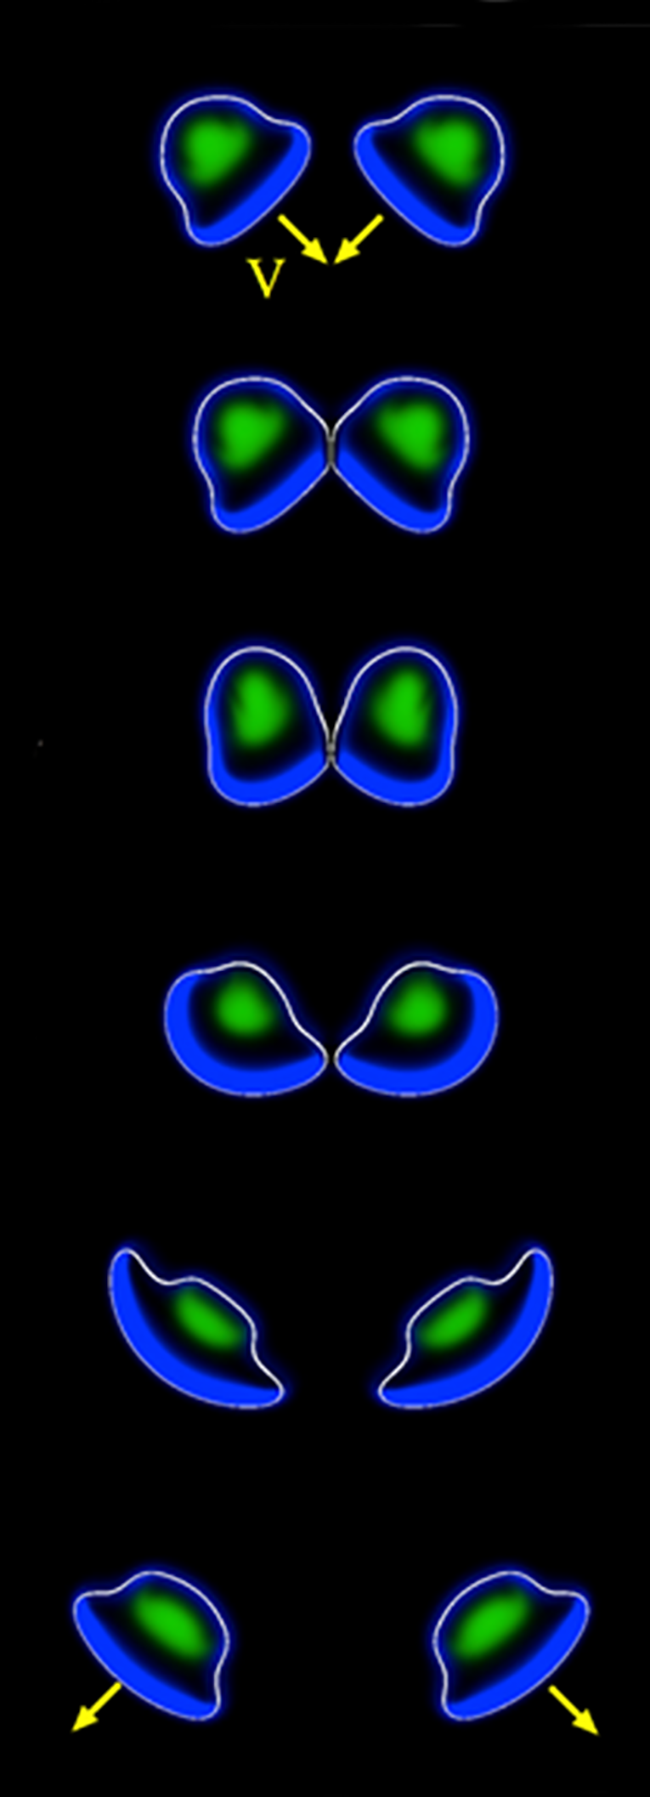 In a simulated collision, two cells deform as they bounce off each other. Many small such collisions can lead to a group of cells moving together in tandem, as modeled by researchers at Argonne National Laboratory.